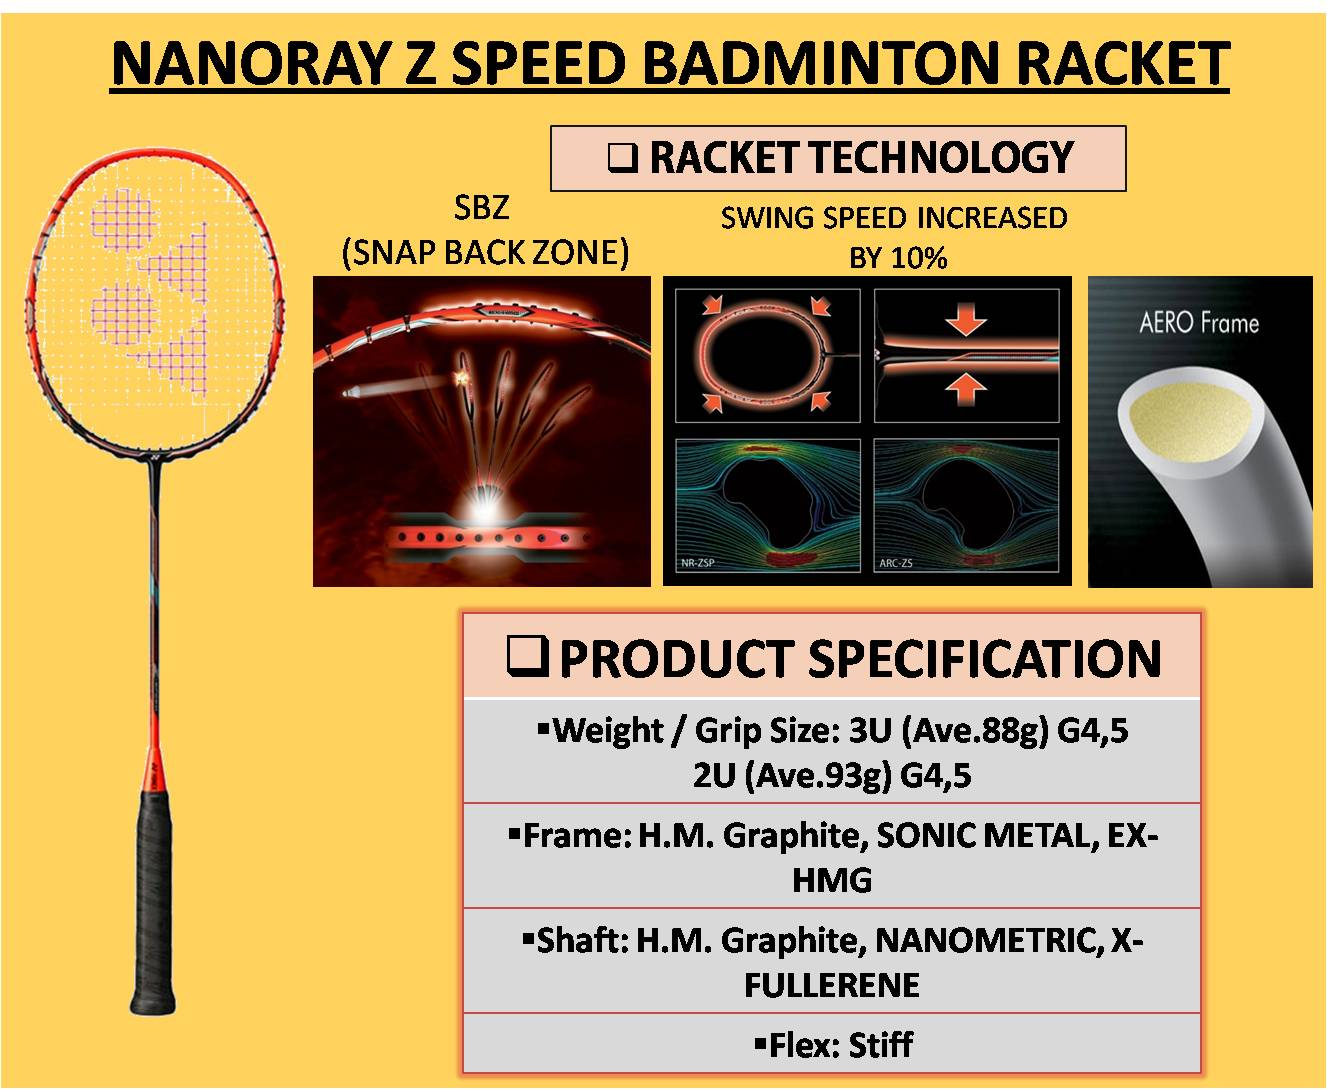 NANORAY Z SPEED BADMINTON RACKET